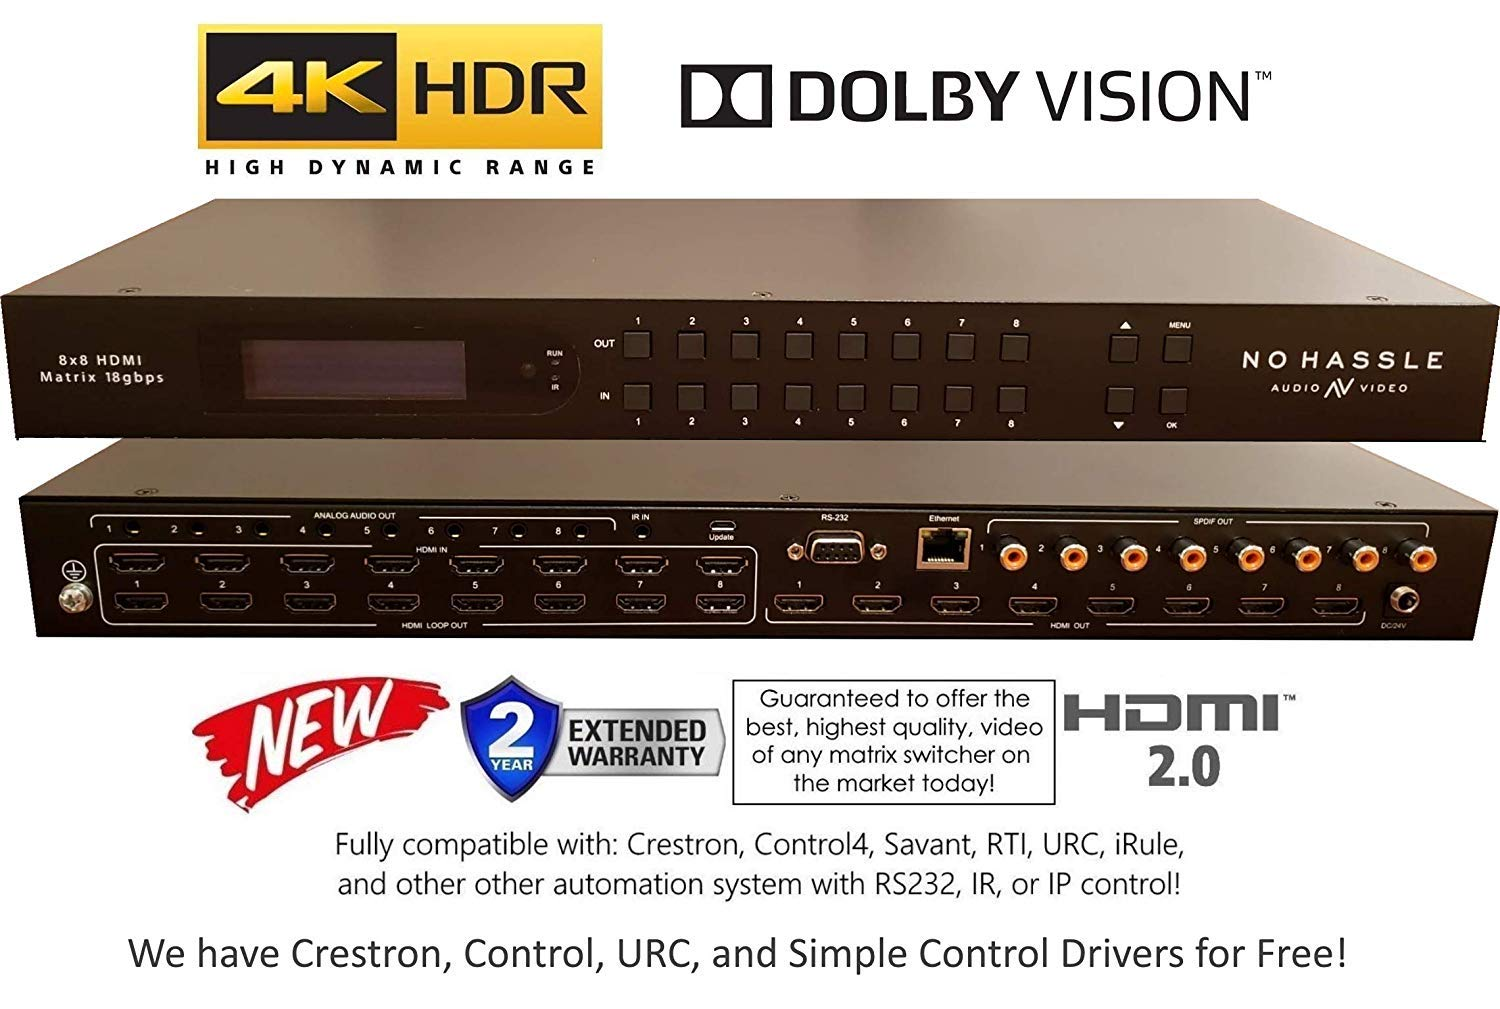 8x8 HDMI 2.0 HDR 4K 18GBPS 60HZ Matrix Switcher Dolby Vision HDR10 YUV 444 HDCP2.2 SPDIF Control4 Savant Home Automation Routing Selector (8x8 HDMI HDR)